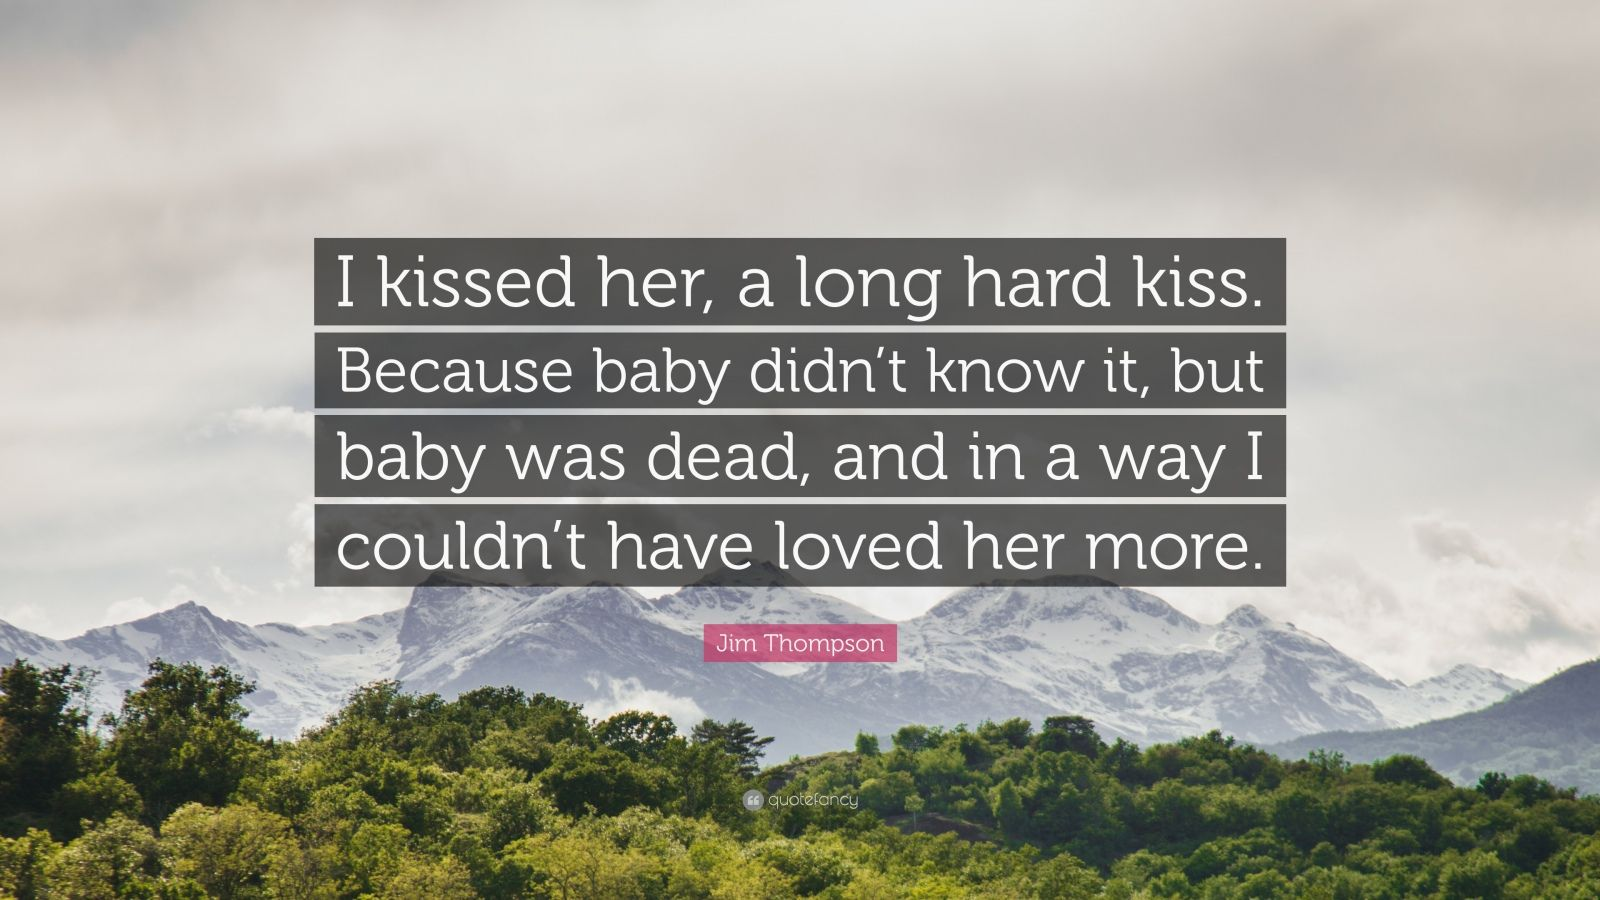 """Jim Thompson Quote: """"I kissed her, a long hard kiss. Because baby didn't know it, but baby was dead, and in a way I couldn't have loved her more."""""""